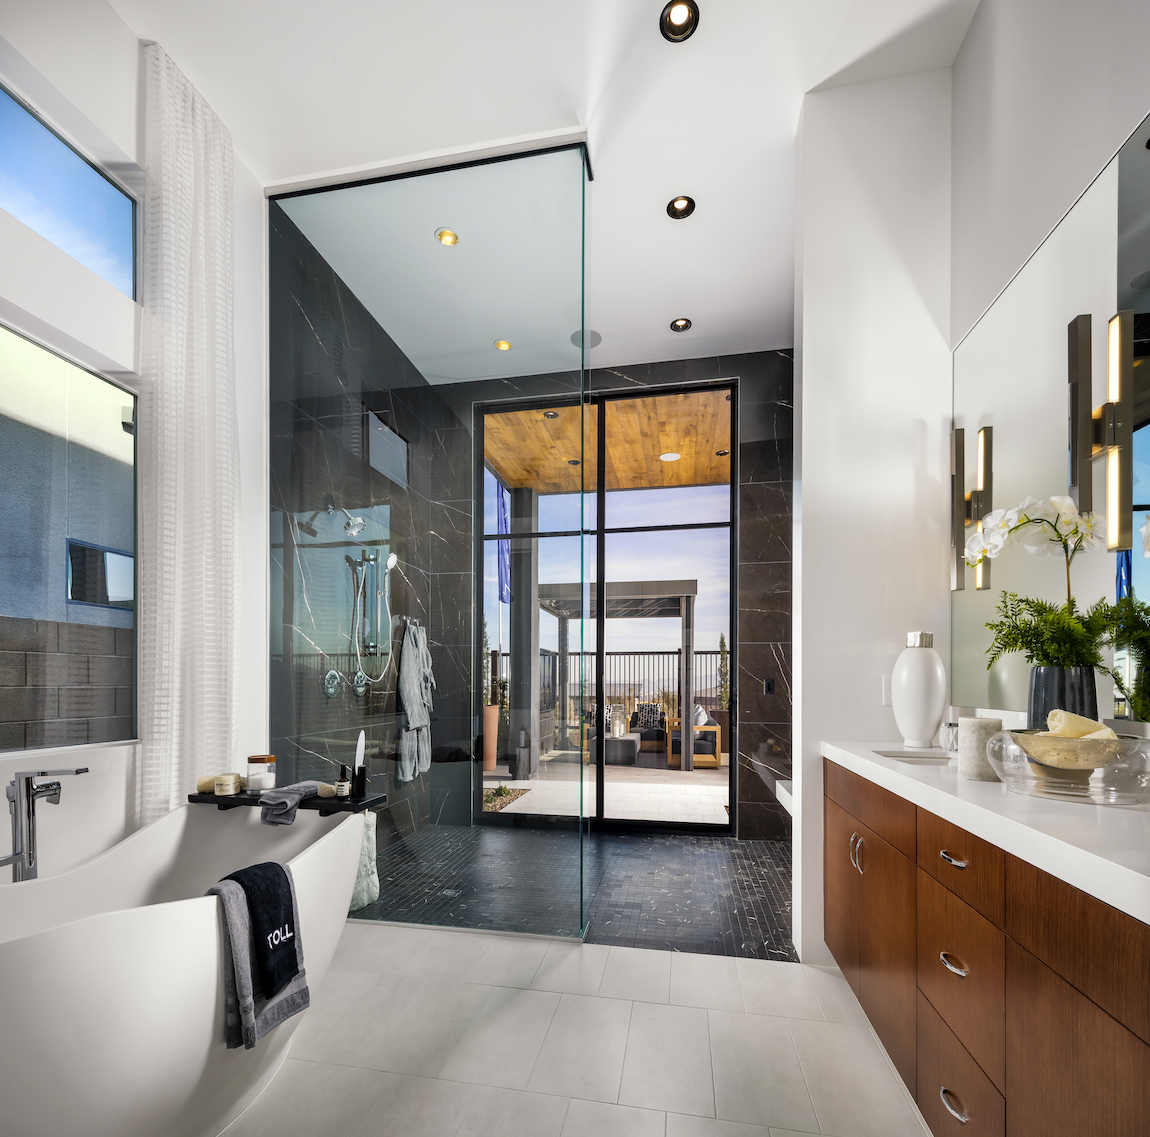 Primary bathroom with a black tile shower.